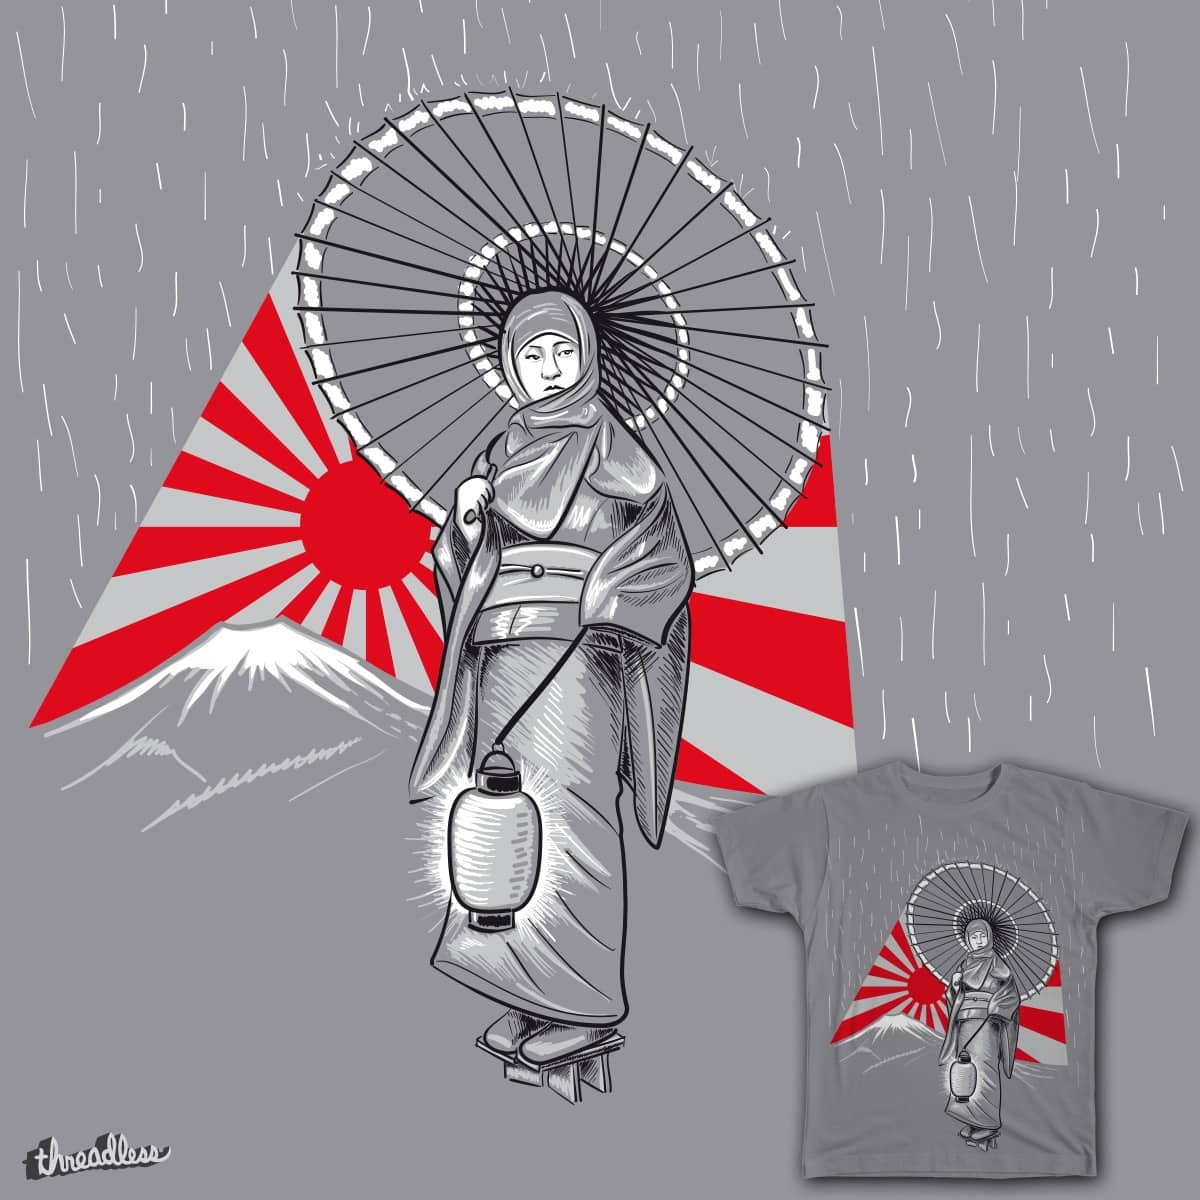 Rising sun by existenz70 on Threadless